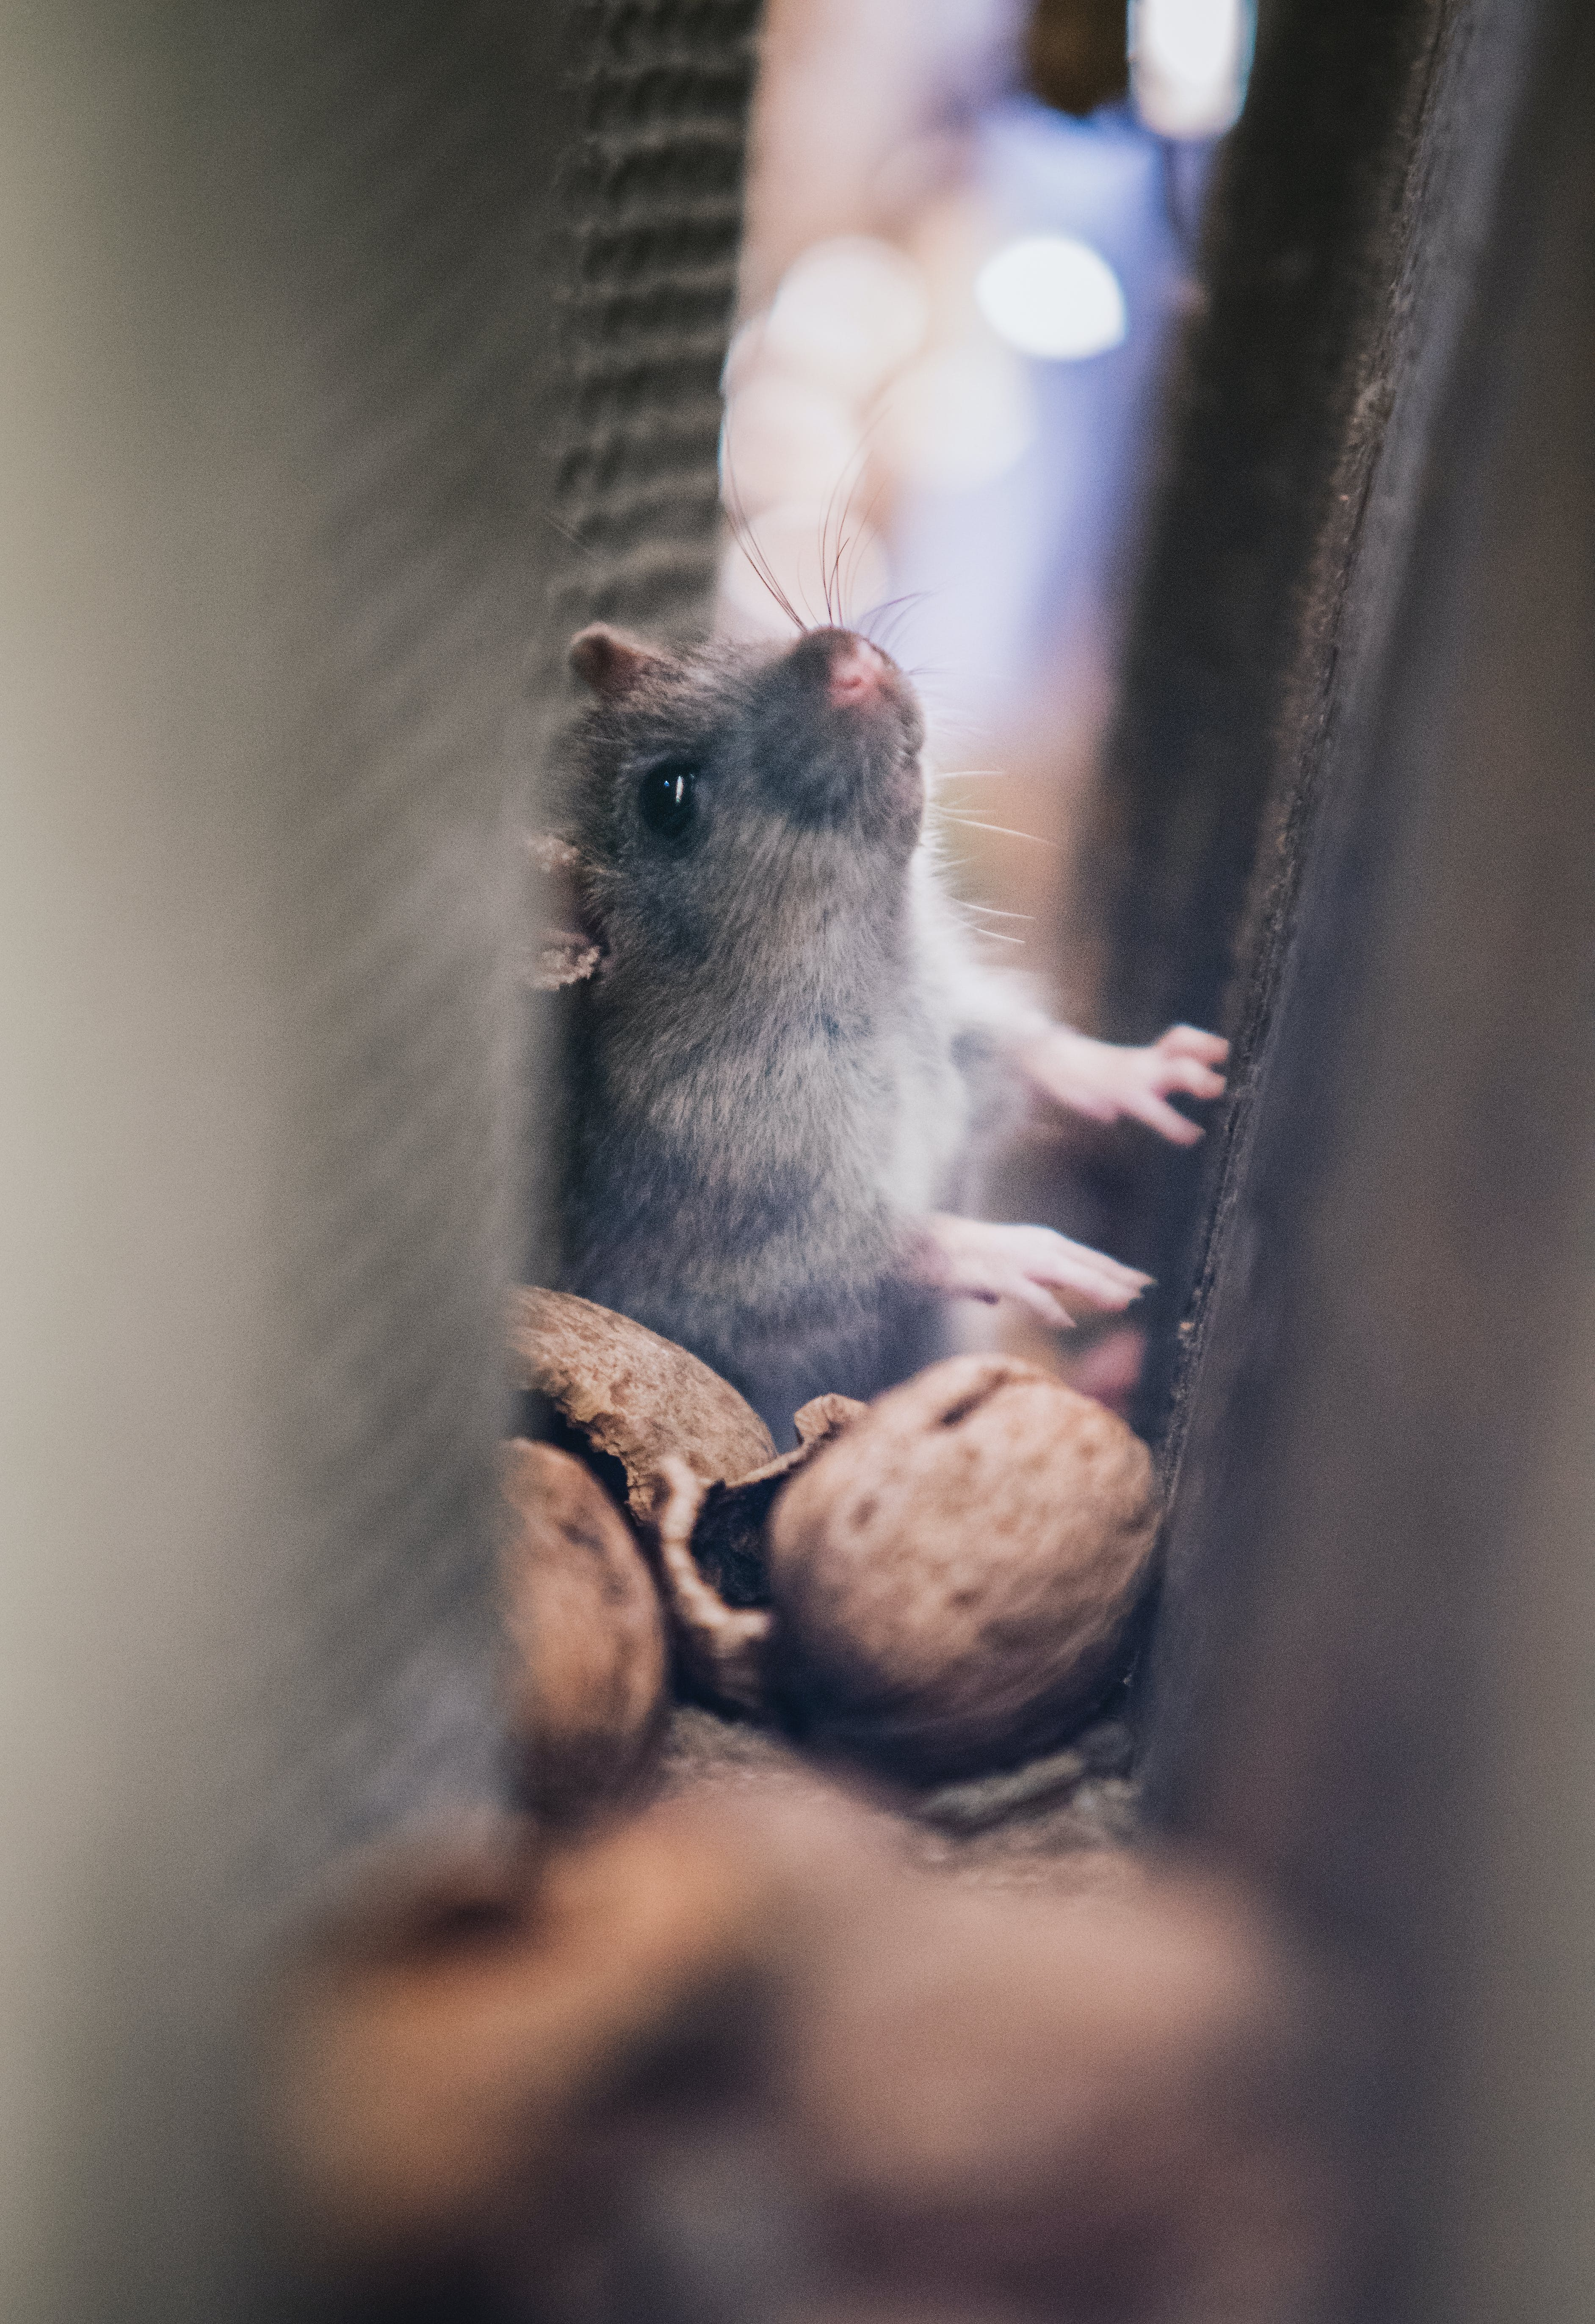 Gray Mice in the Middle of Walls